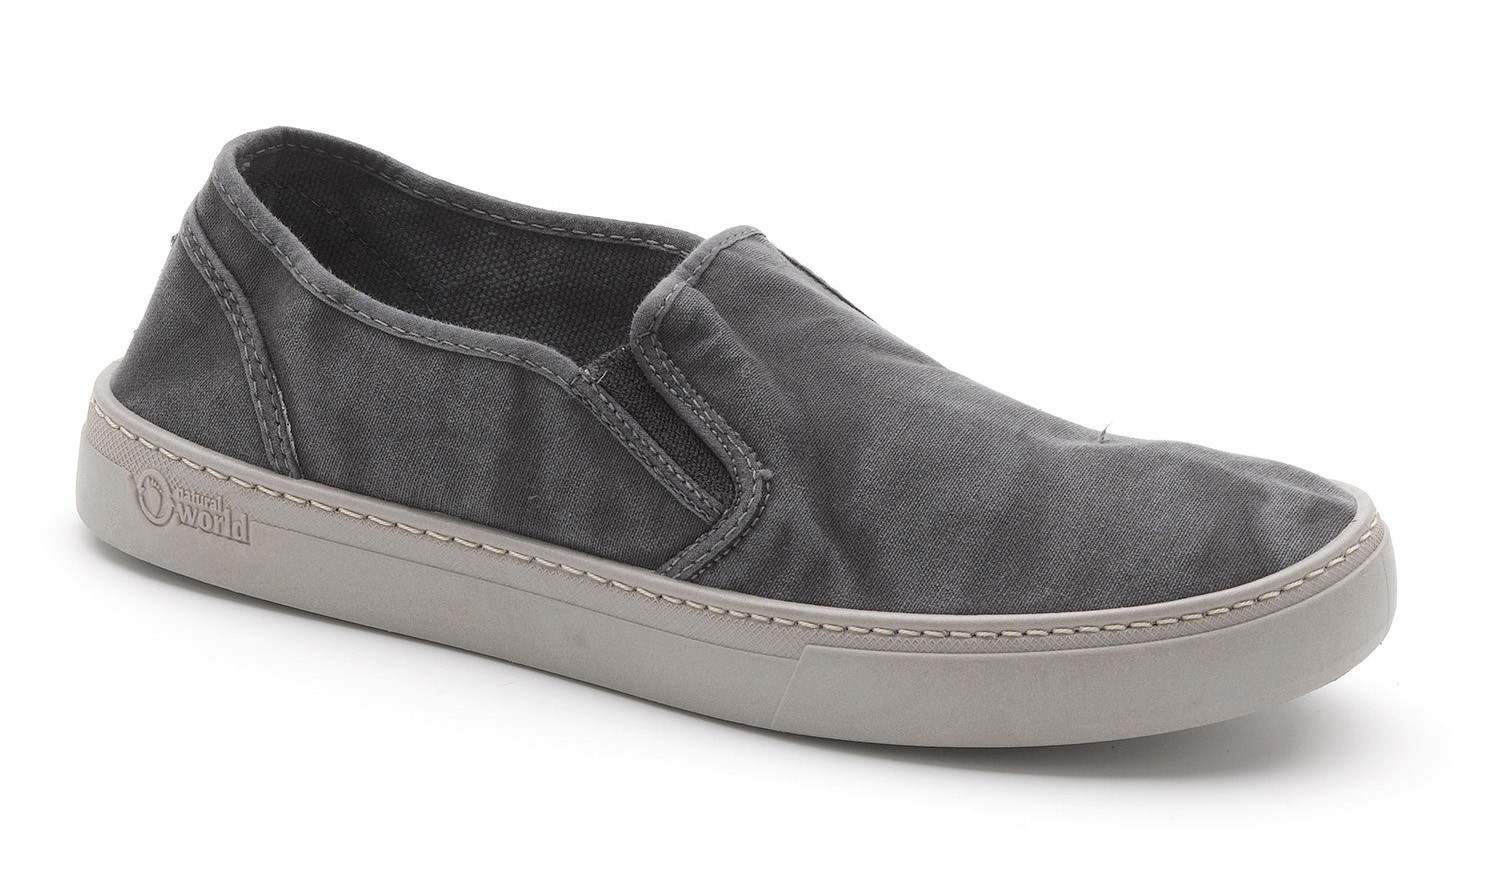 Natural World mocassino slip-on Gazelle